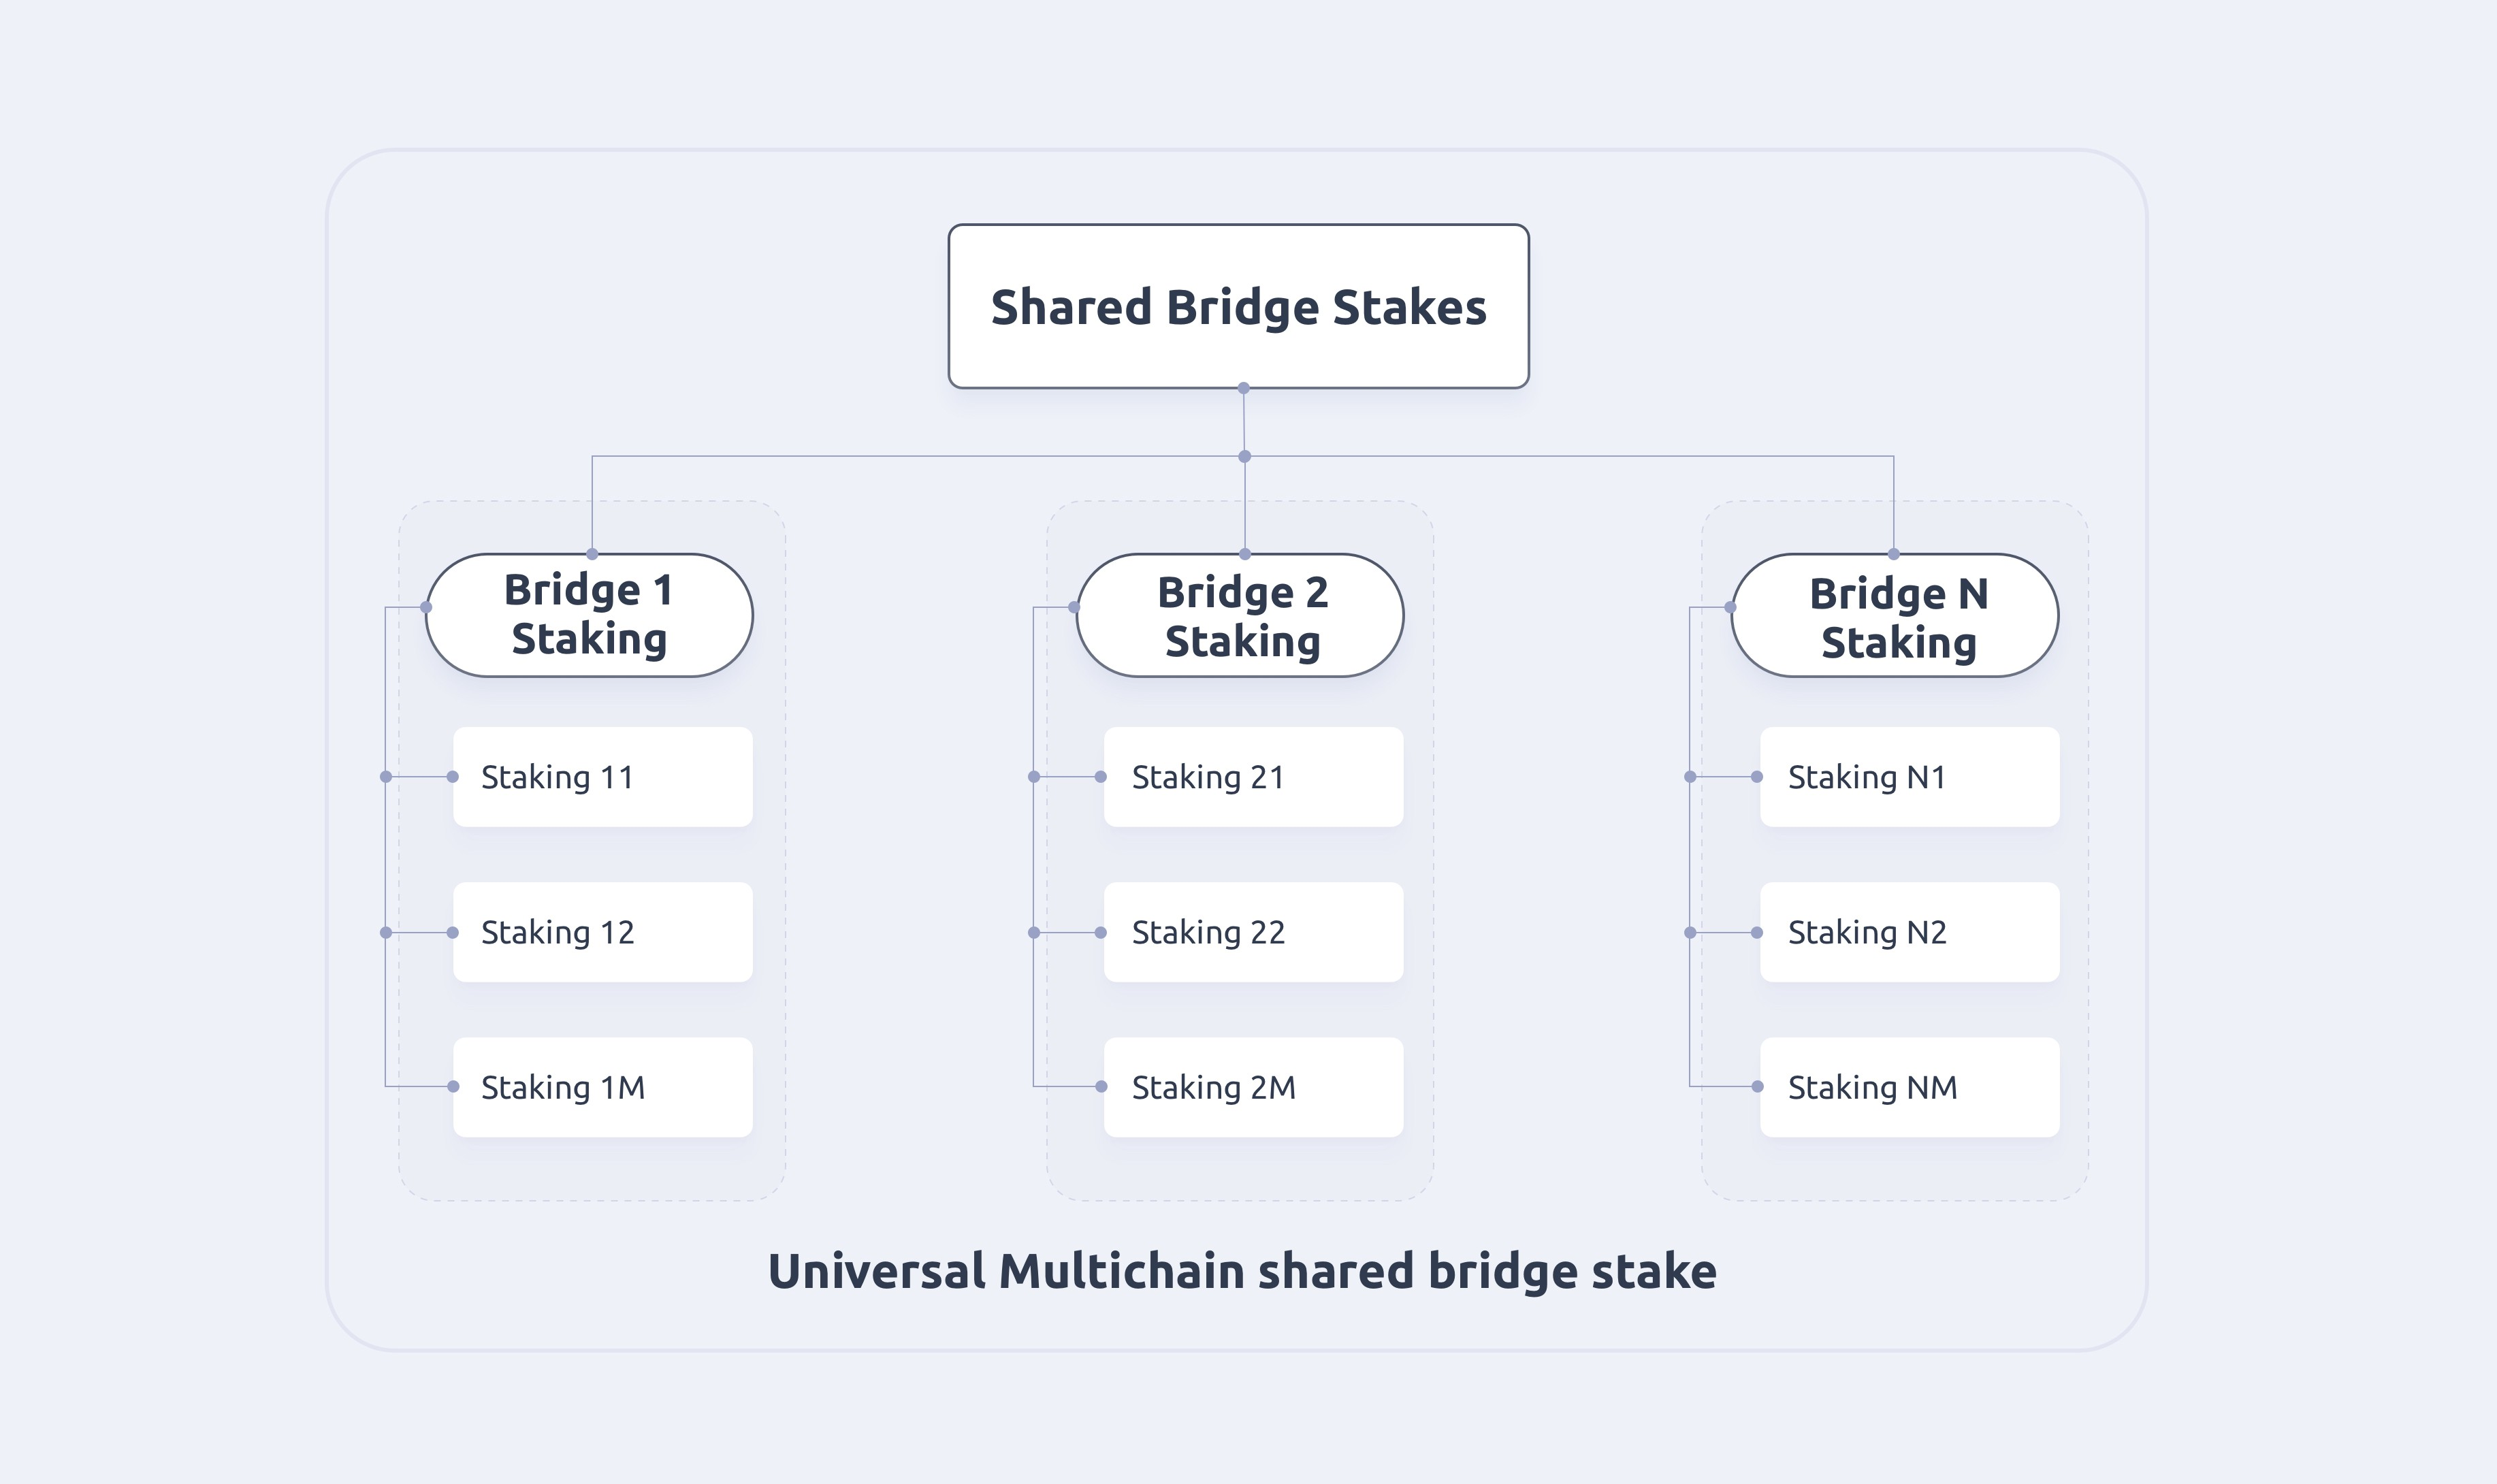 Figure 3 Shared Bridge Stakes